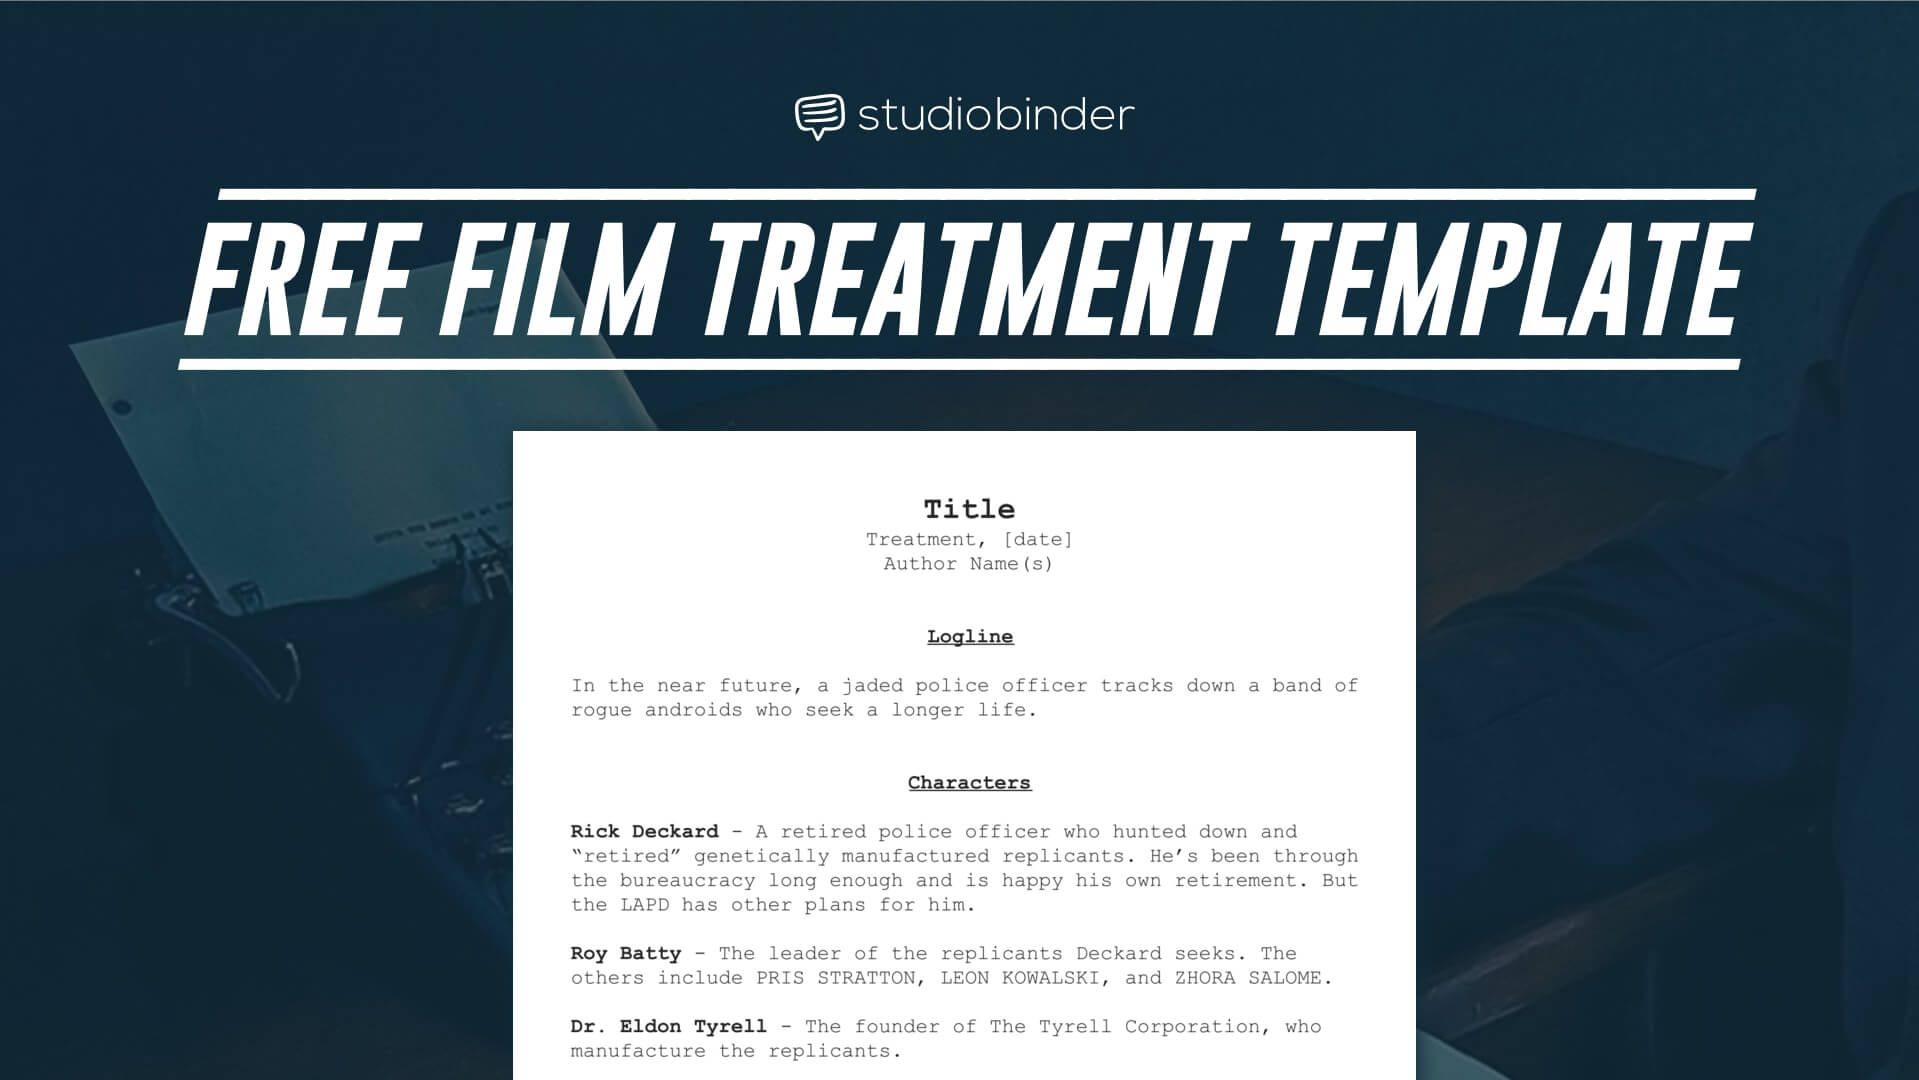 Free Film Treatment Template - Featured - StudioBinder